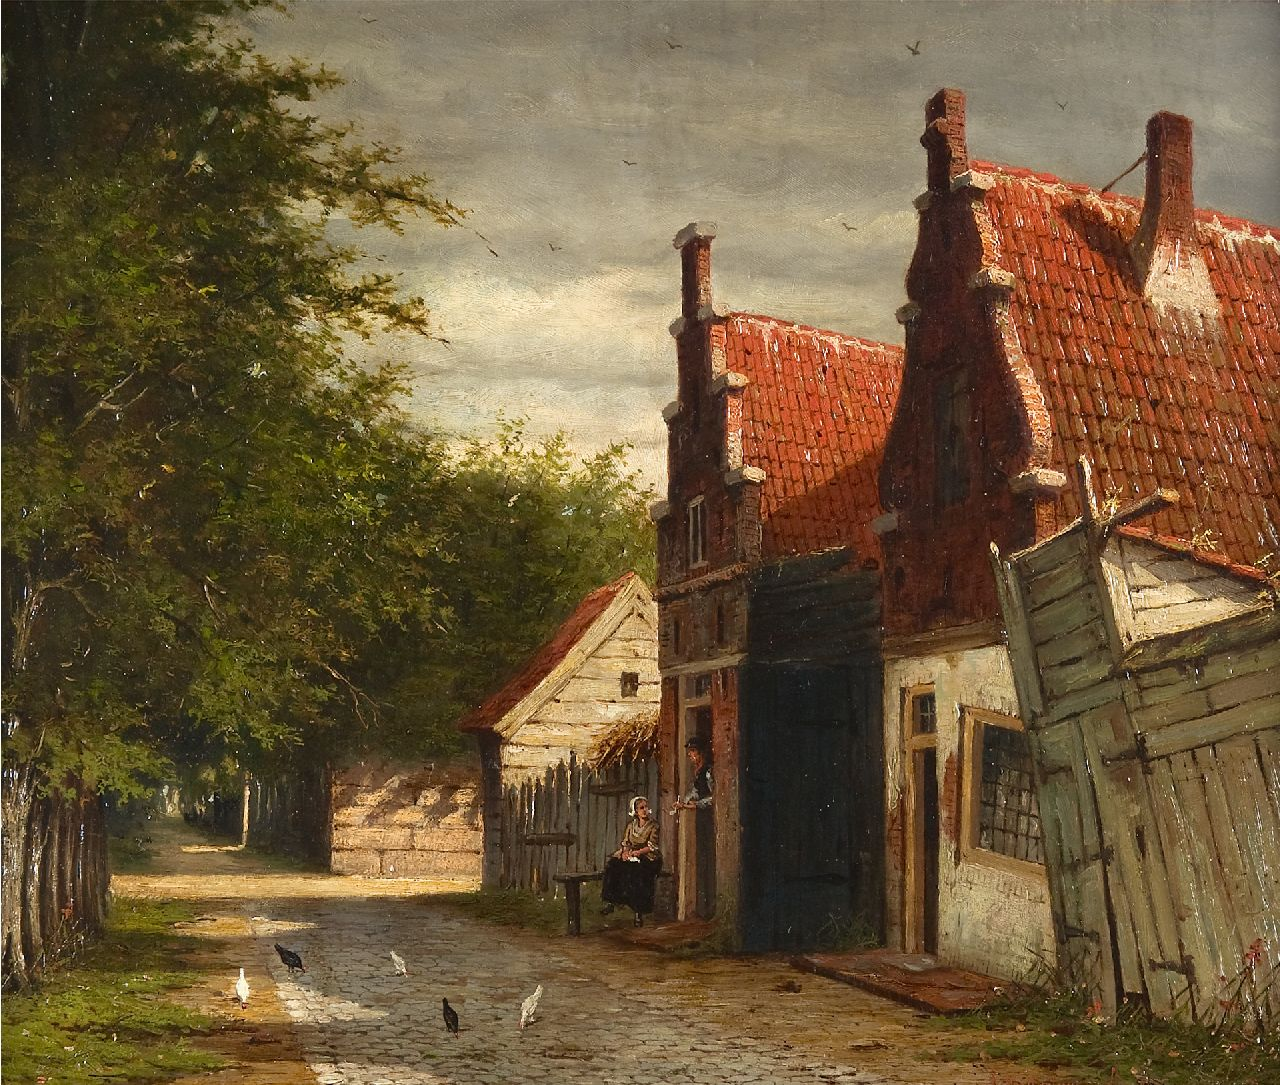 Mittertreiner J.J.  | Johannes Jacobus Mittertreiner | Paintings offered for sale | A village street in summer, oil on painter's board 35.2 x 43.0 cm, signed l.r.